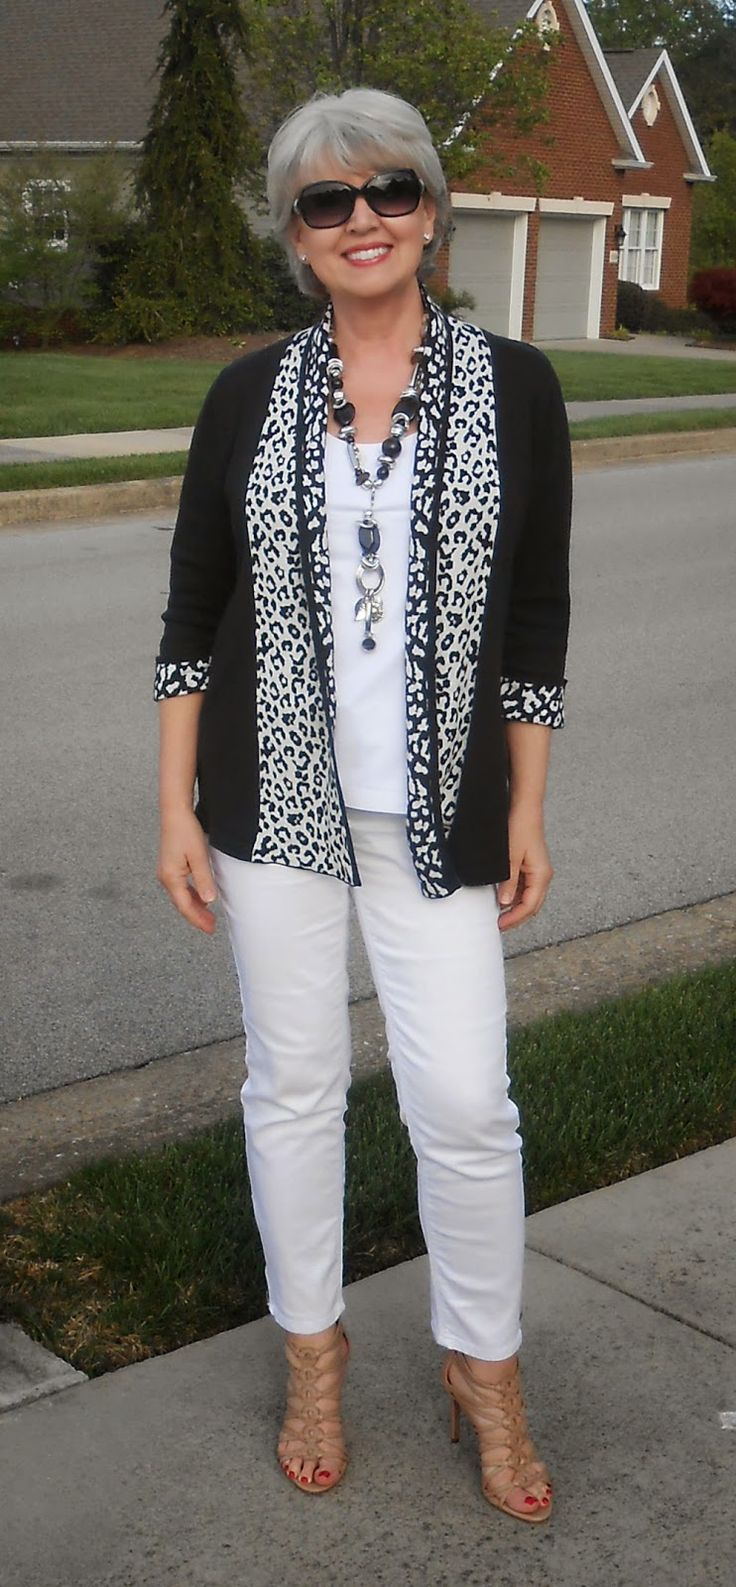 I love this outfit, I always like black & white together, very put together.  Don't like the heels though, to high.